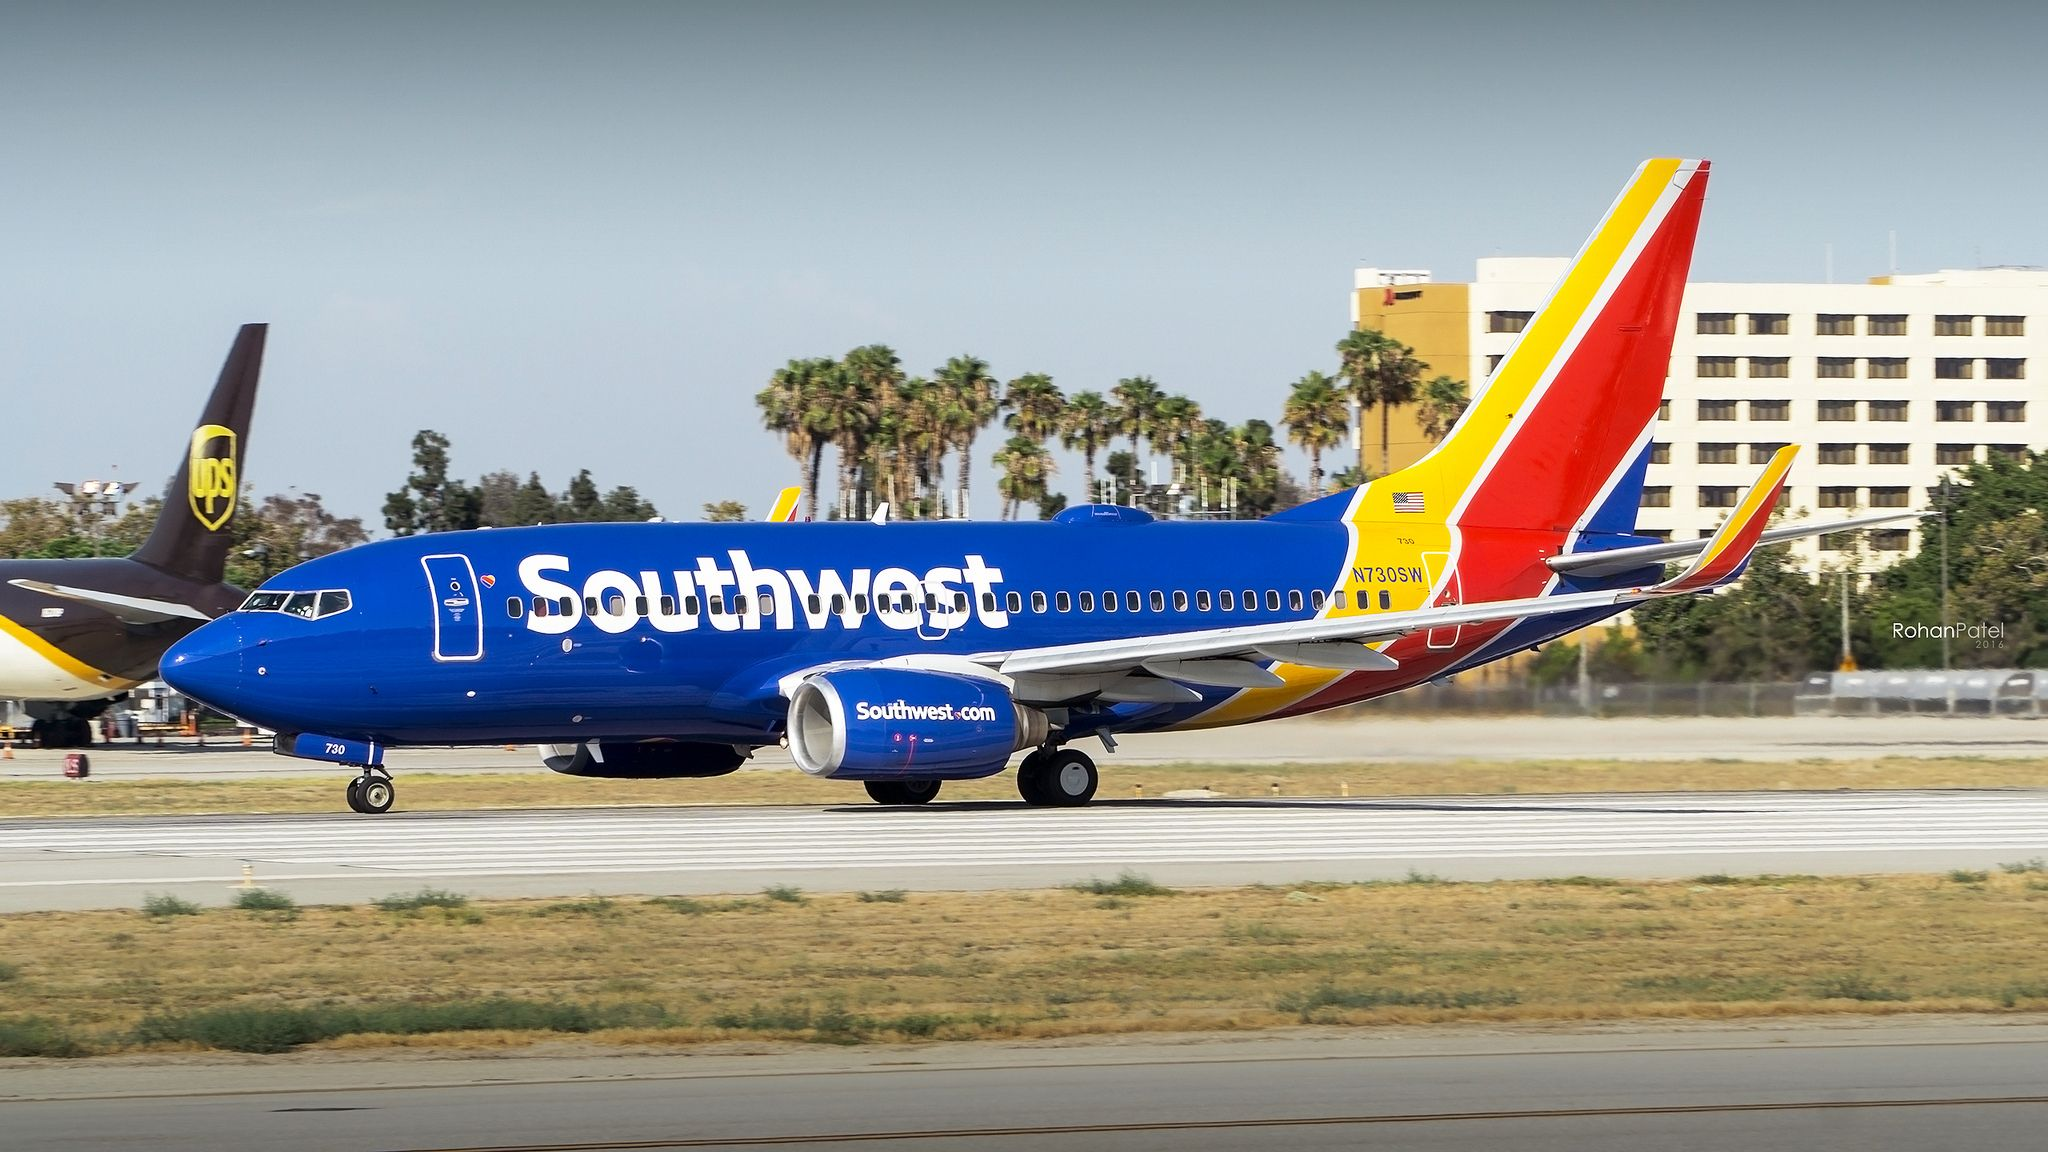 Southwest 737 New Livery Departure Air Long